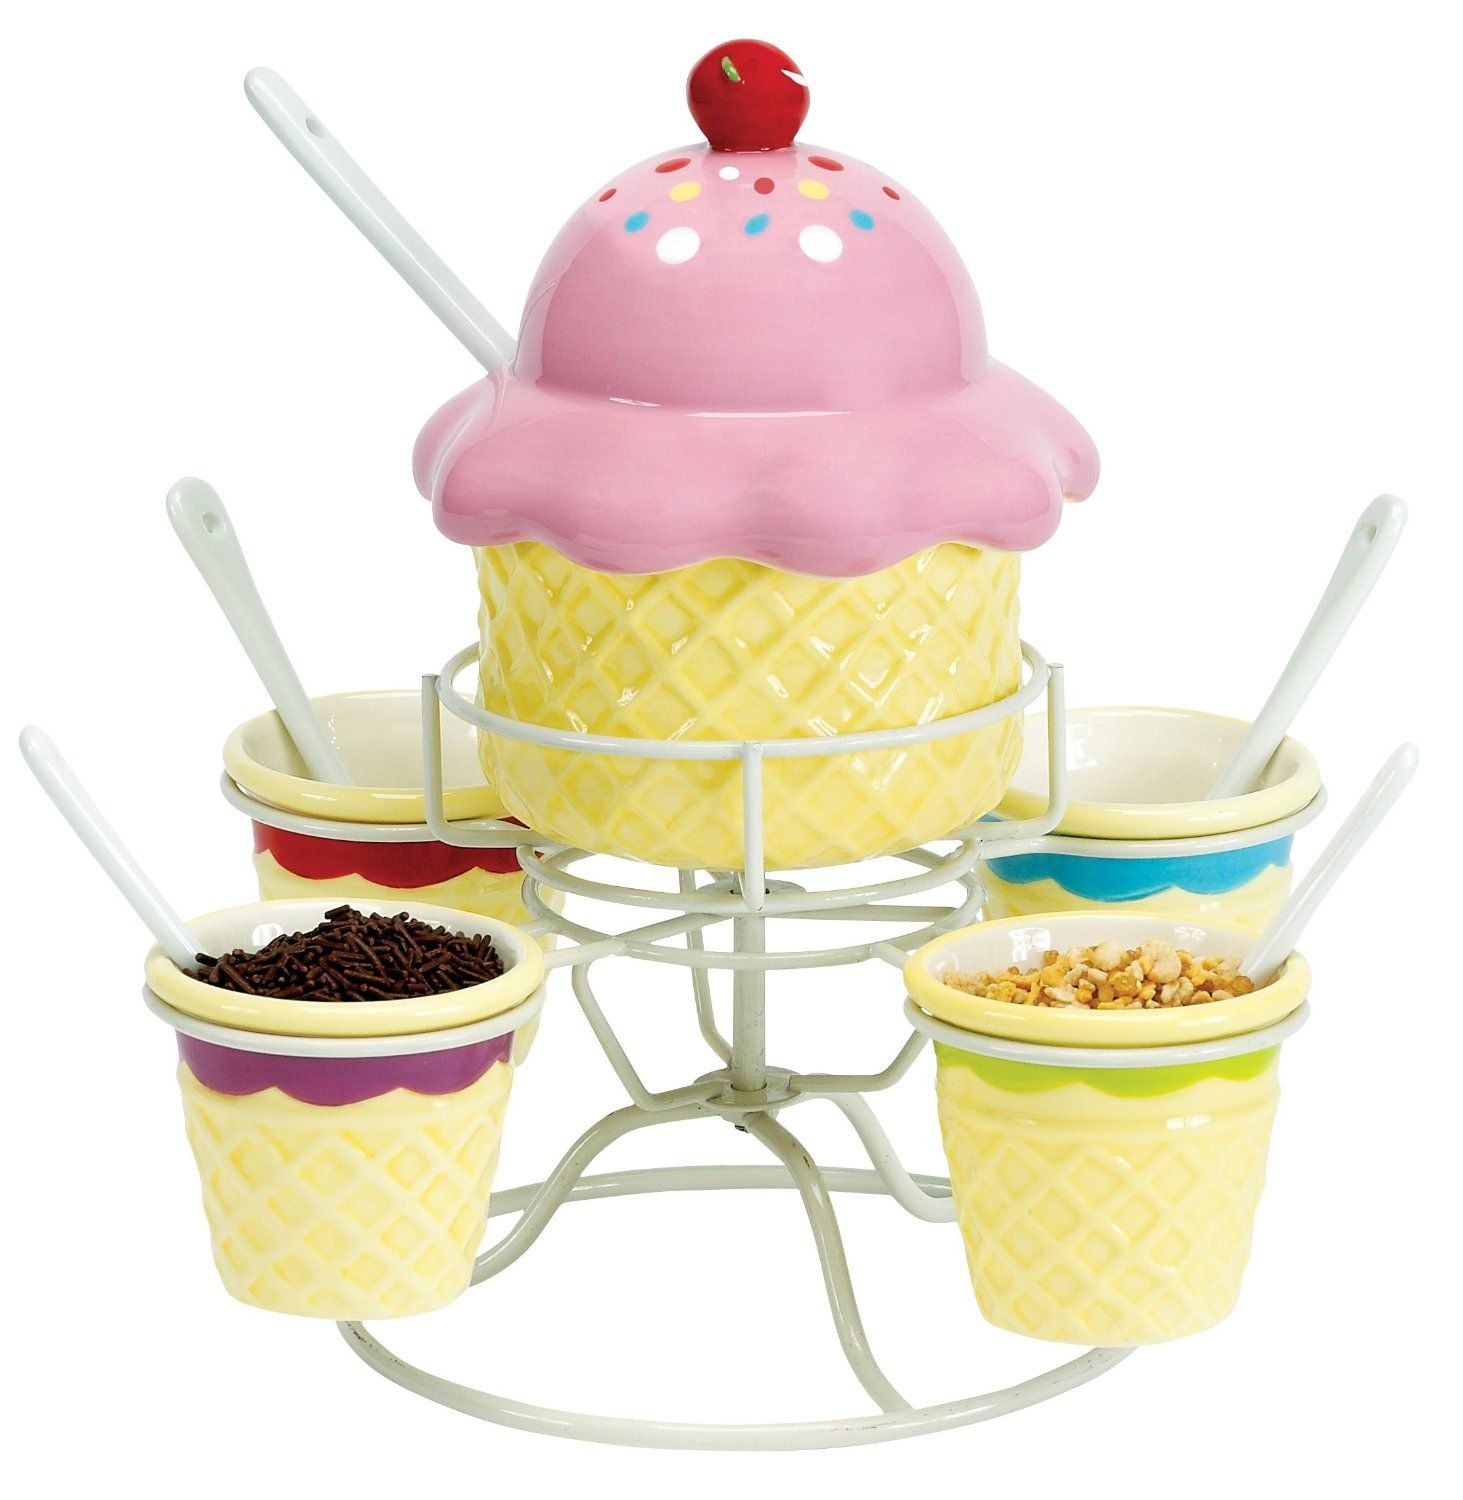 Ice Cream Social Topping Spinner Set 103 39 Cad Amazon Ca Ice